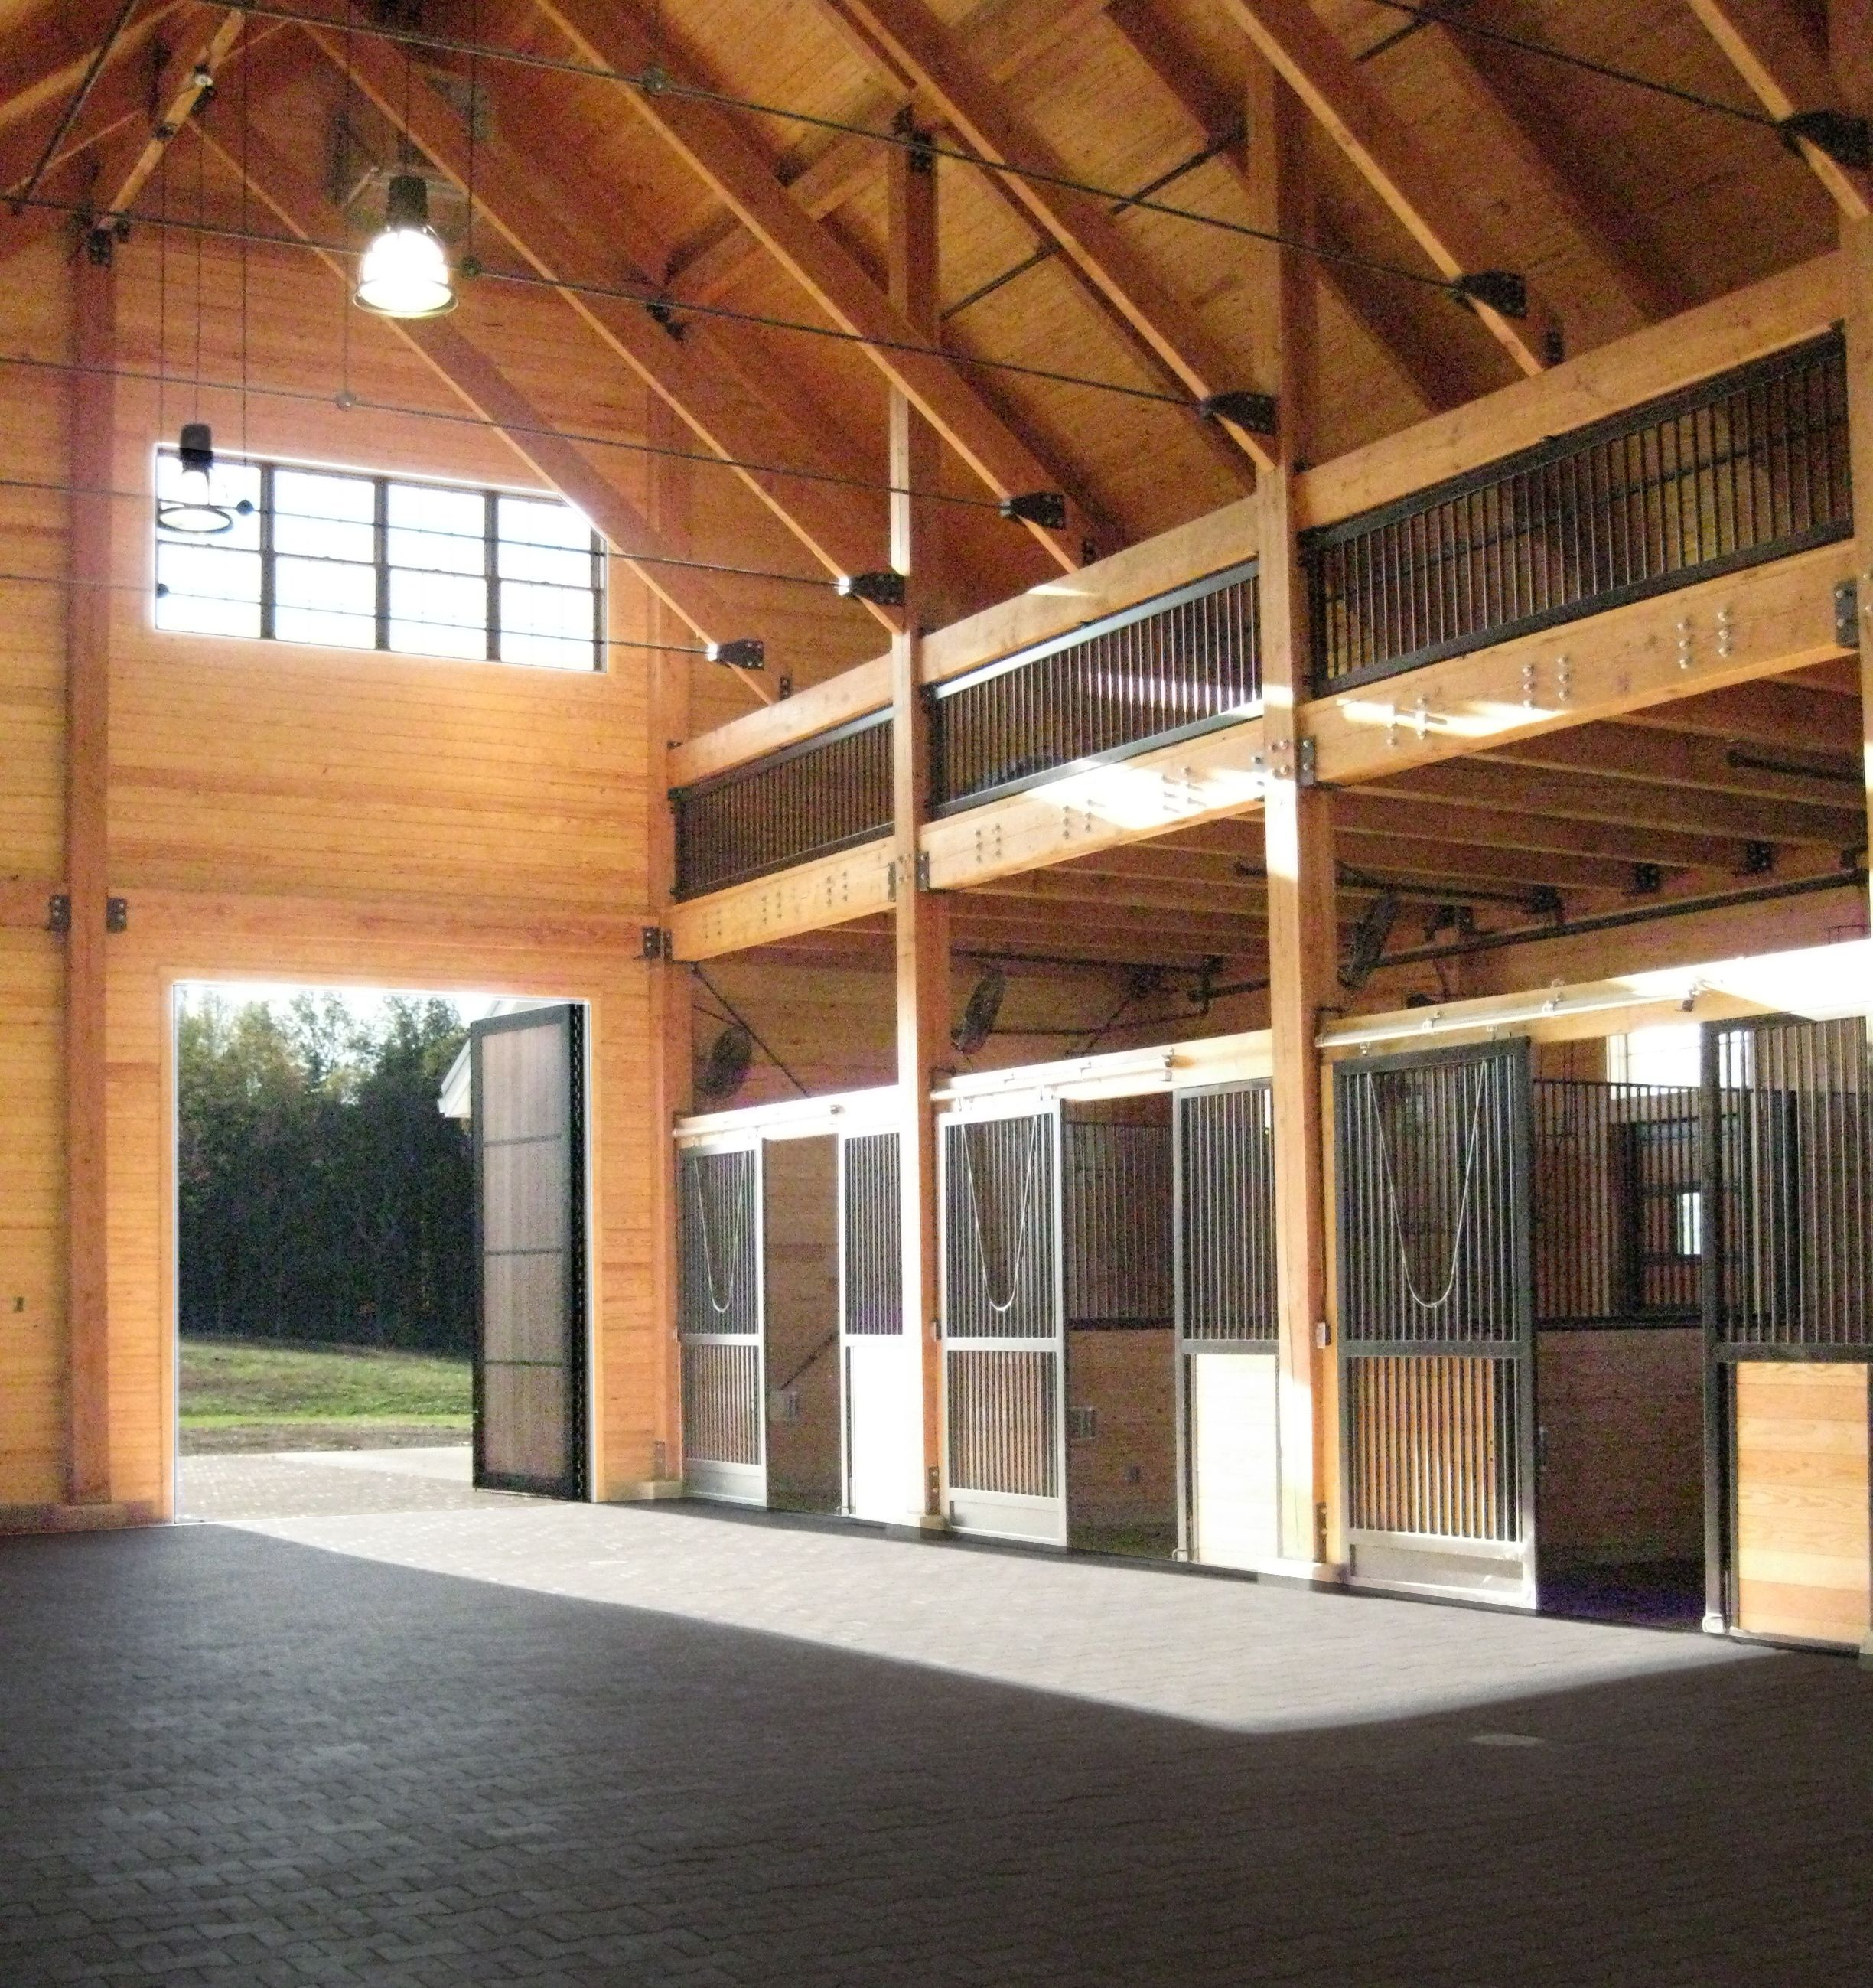 Indoor Riding Arena With Stalls: Indoor Horse Arena And Stables